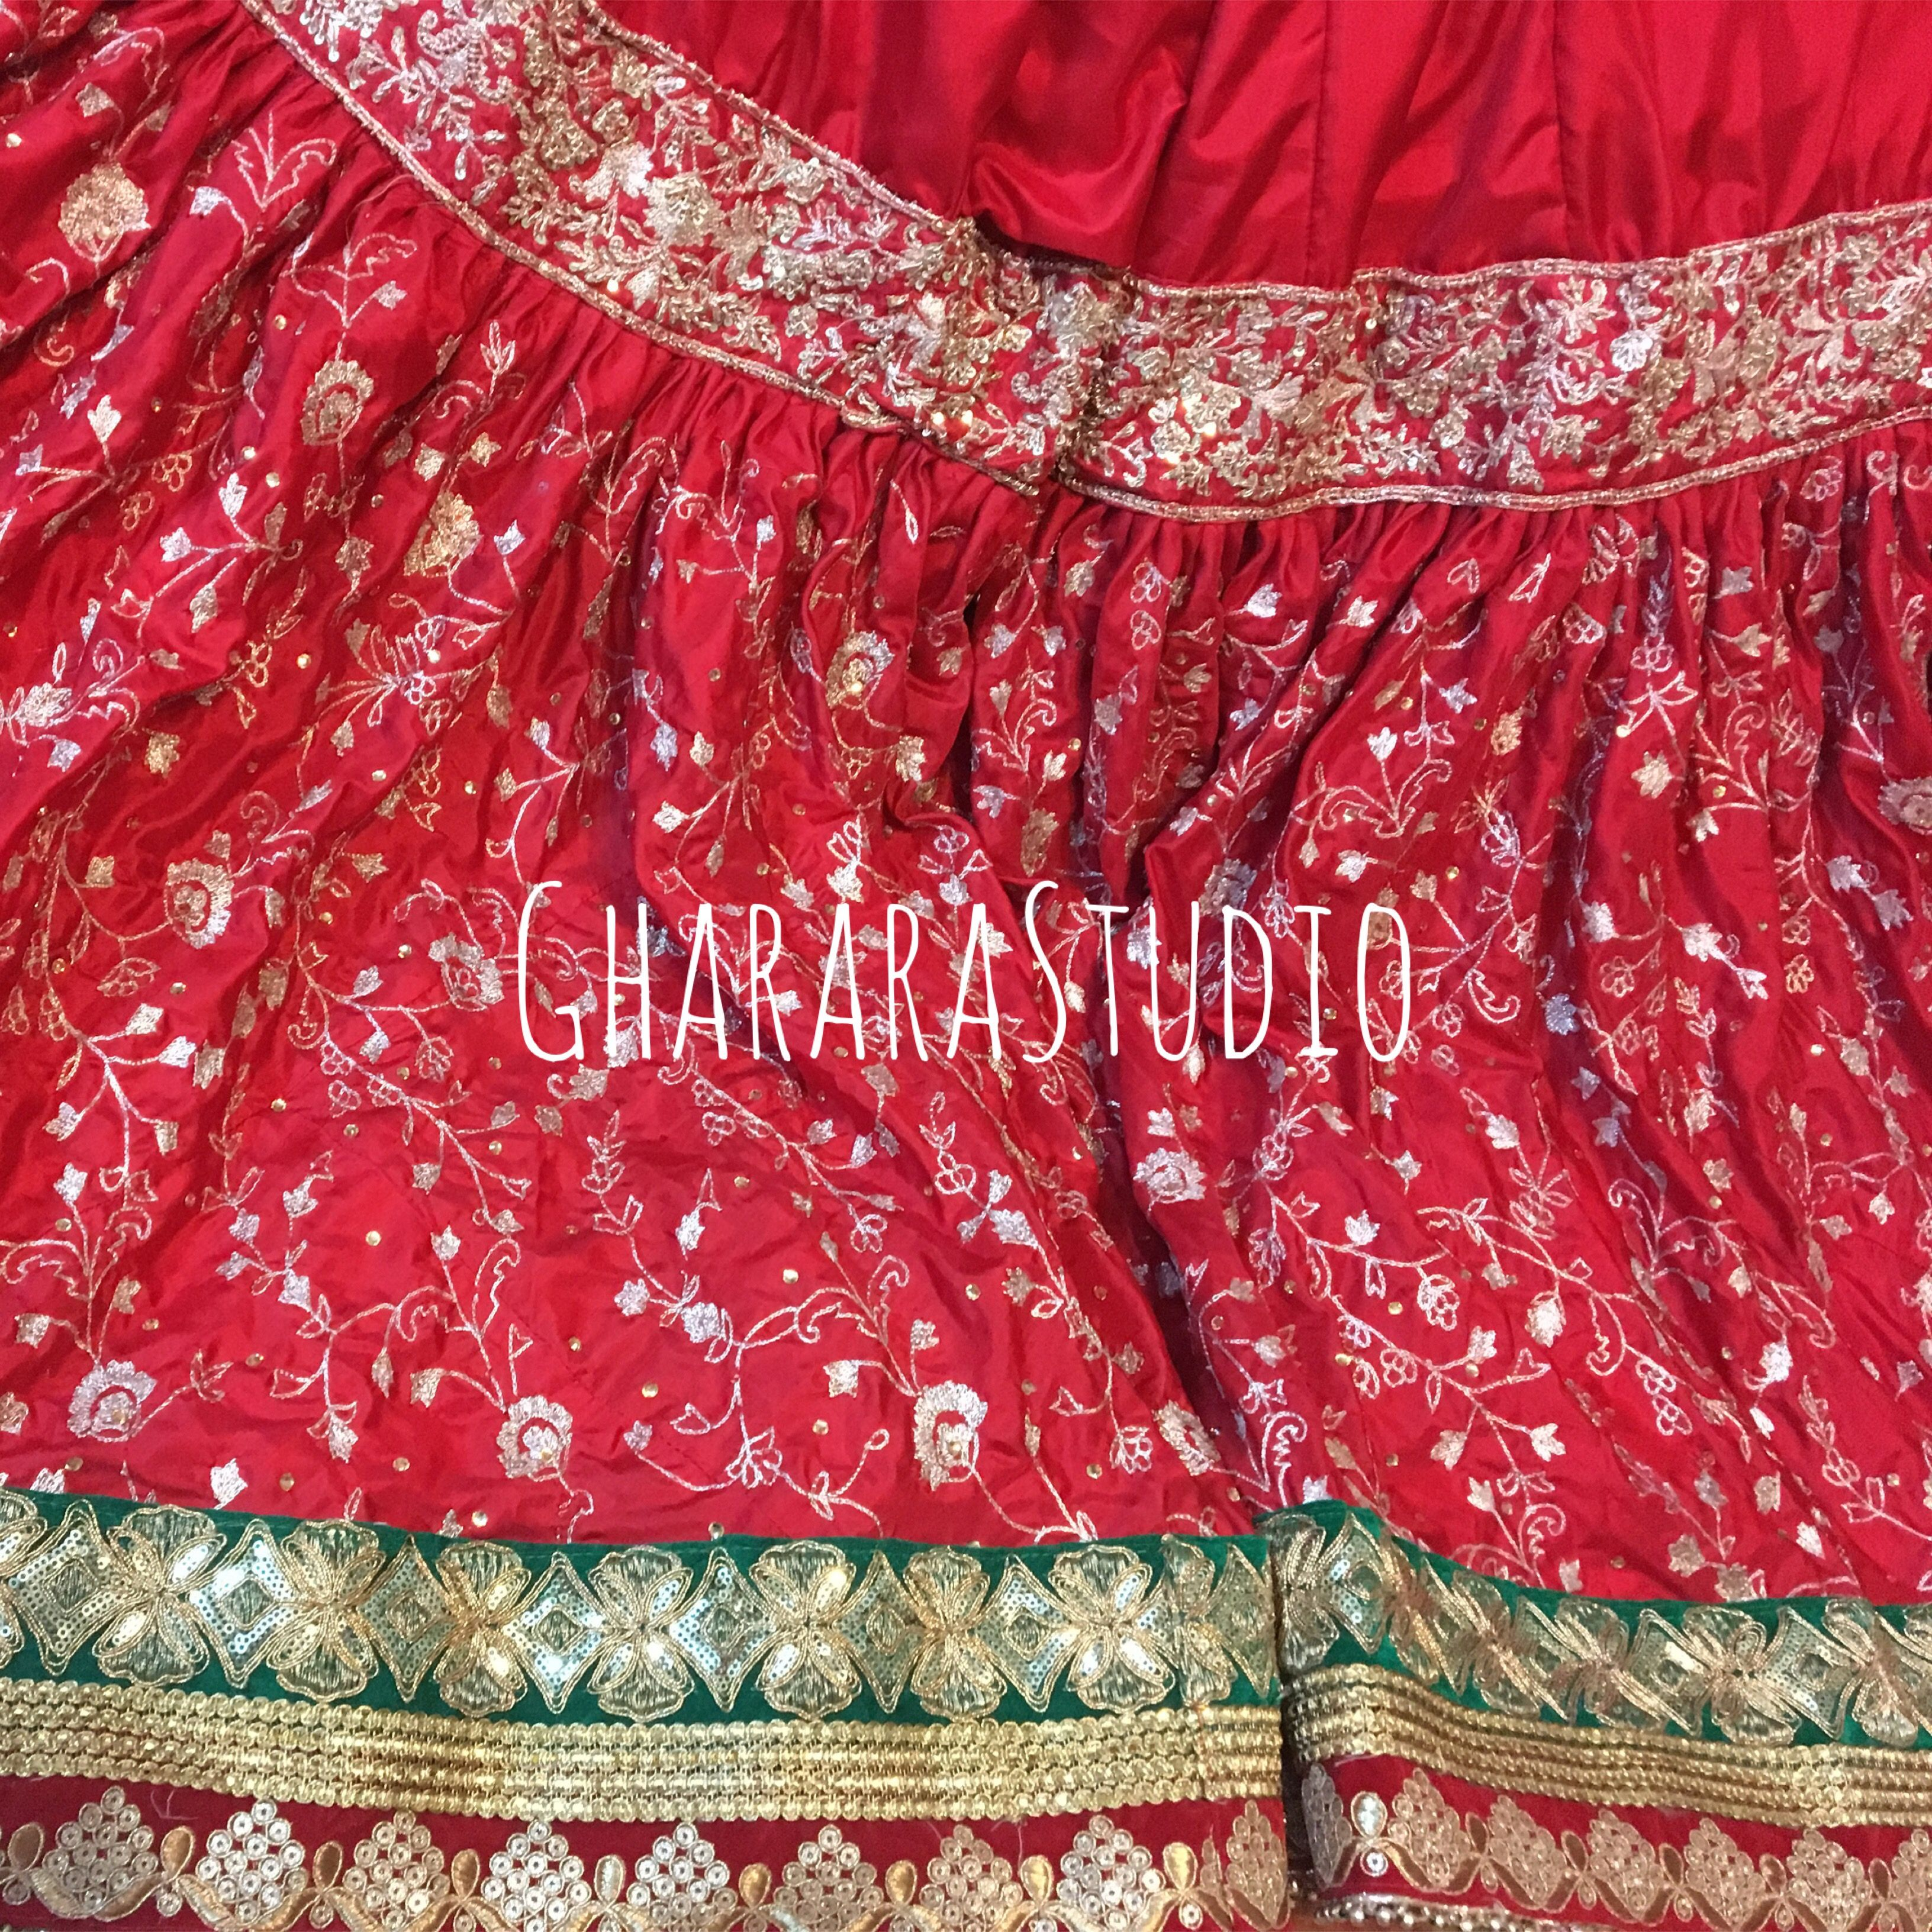 7859531cb1 Gharara in red silk with zari zardozi handwork embroidery all over.  WhatsApp at +919971865919 to order Deliver complete stitched to your size  Deliver ...